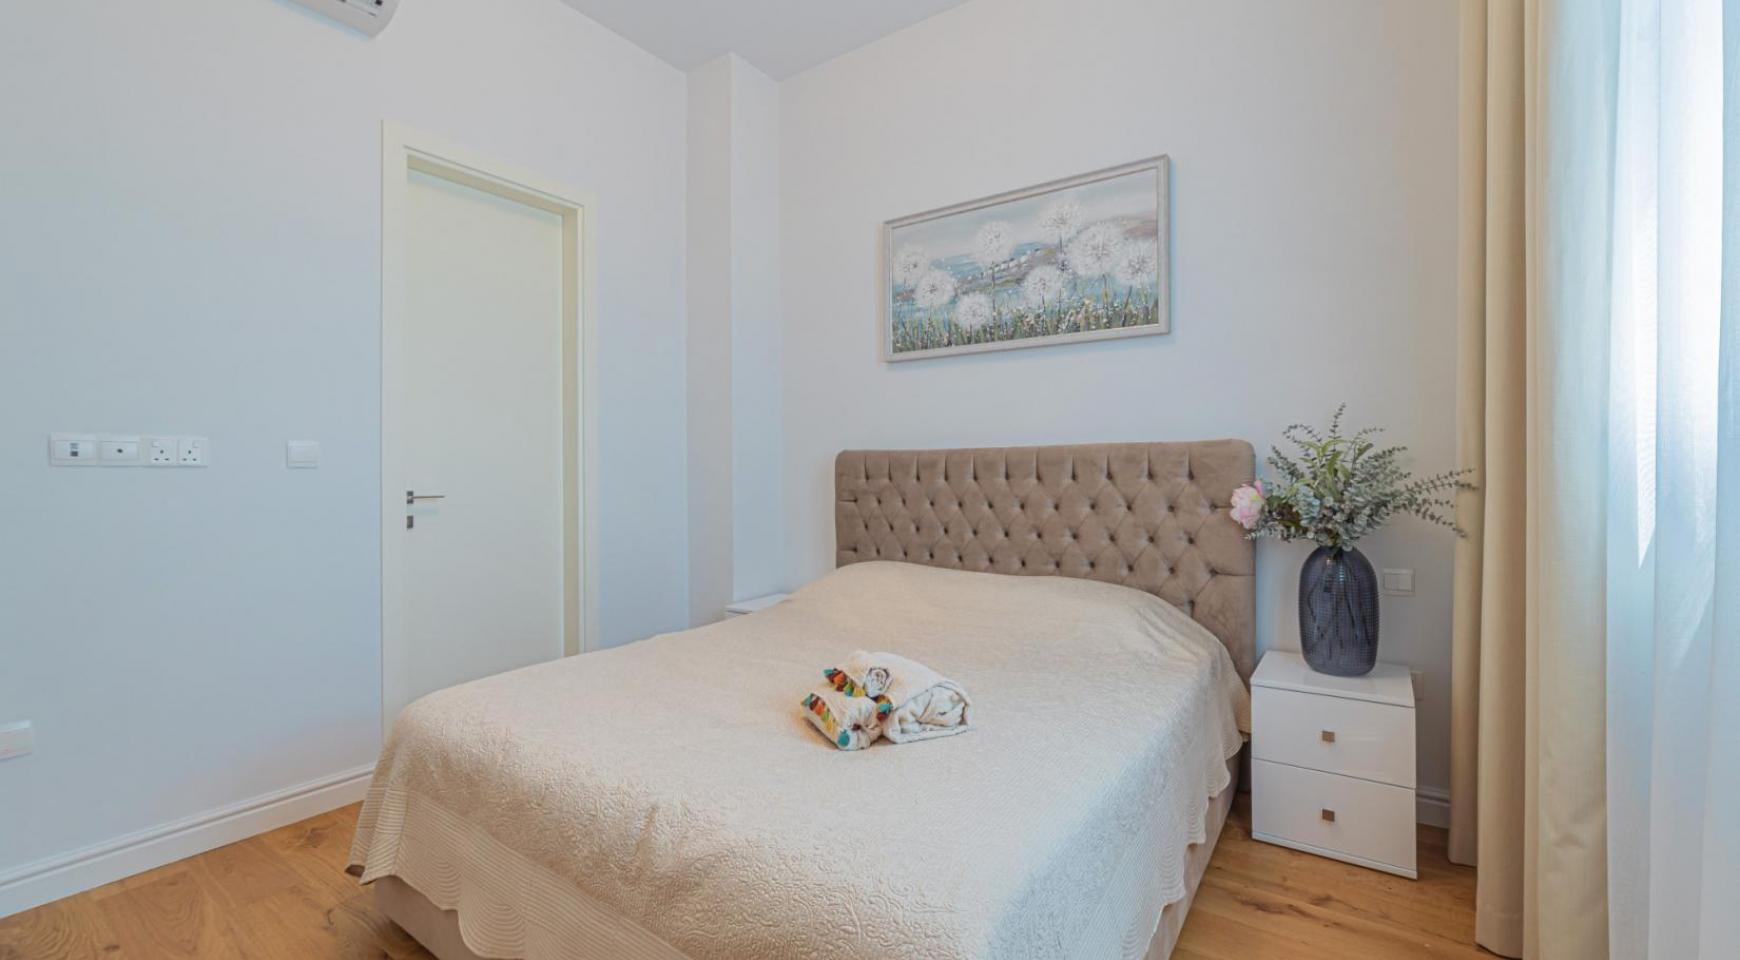 Hortensia Residence, Apt. 202. 2 Bedroom Apartment within a New Complex near the Sea  - 63